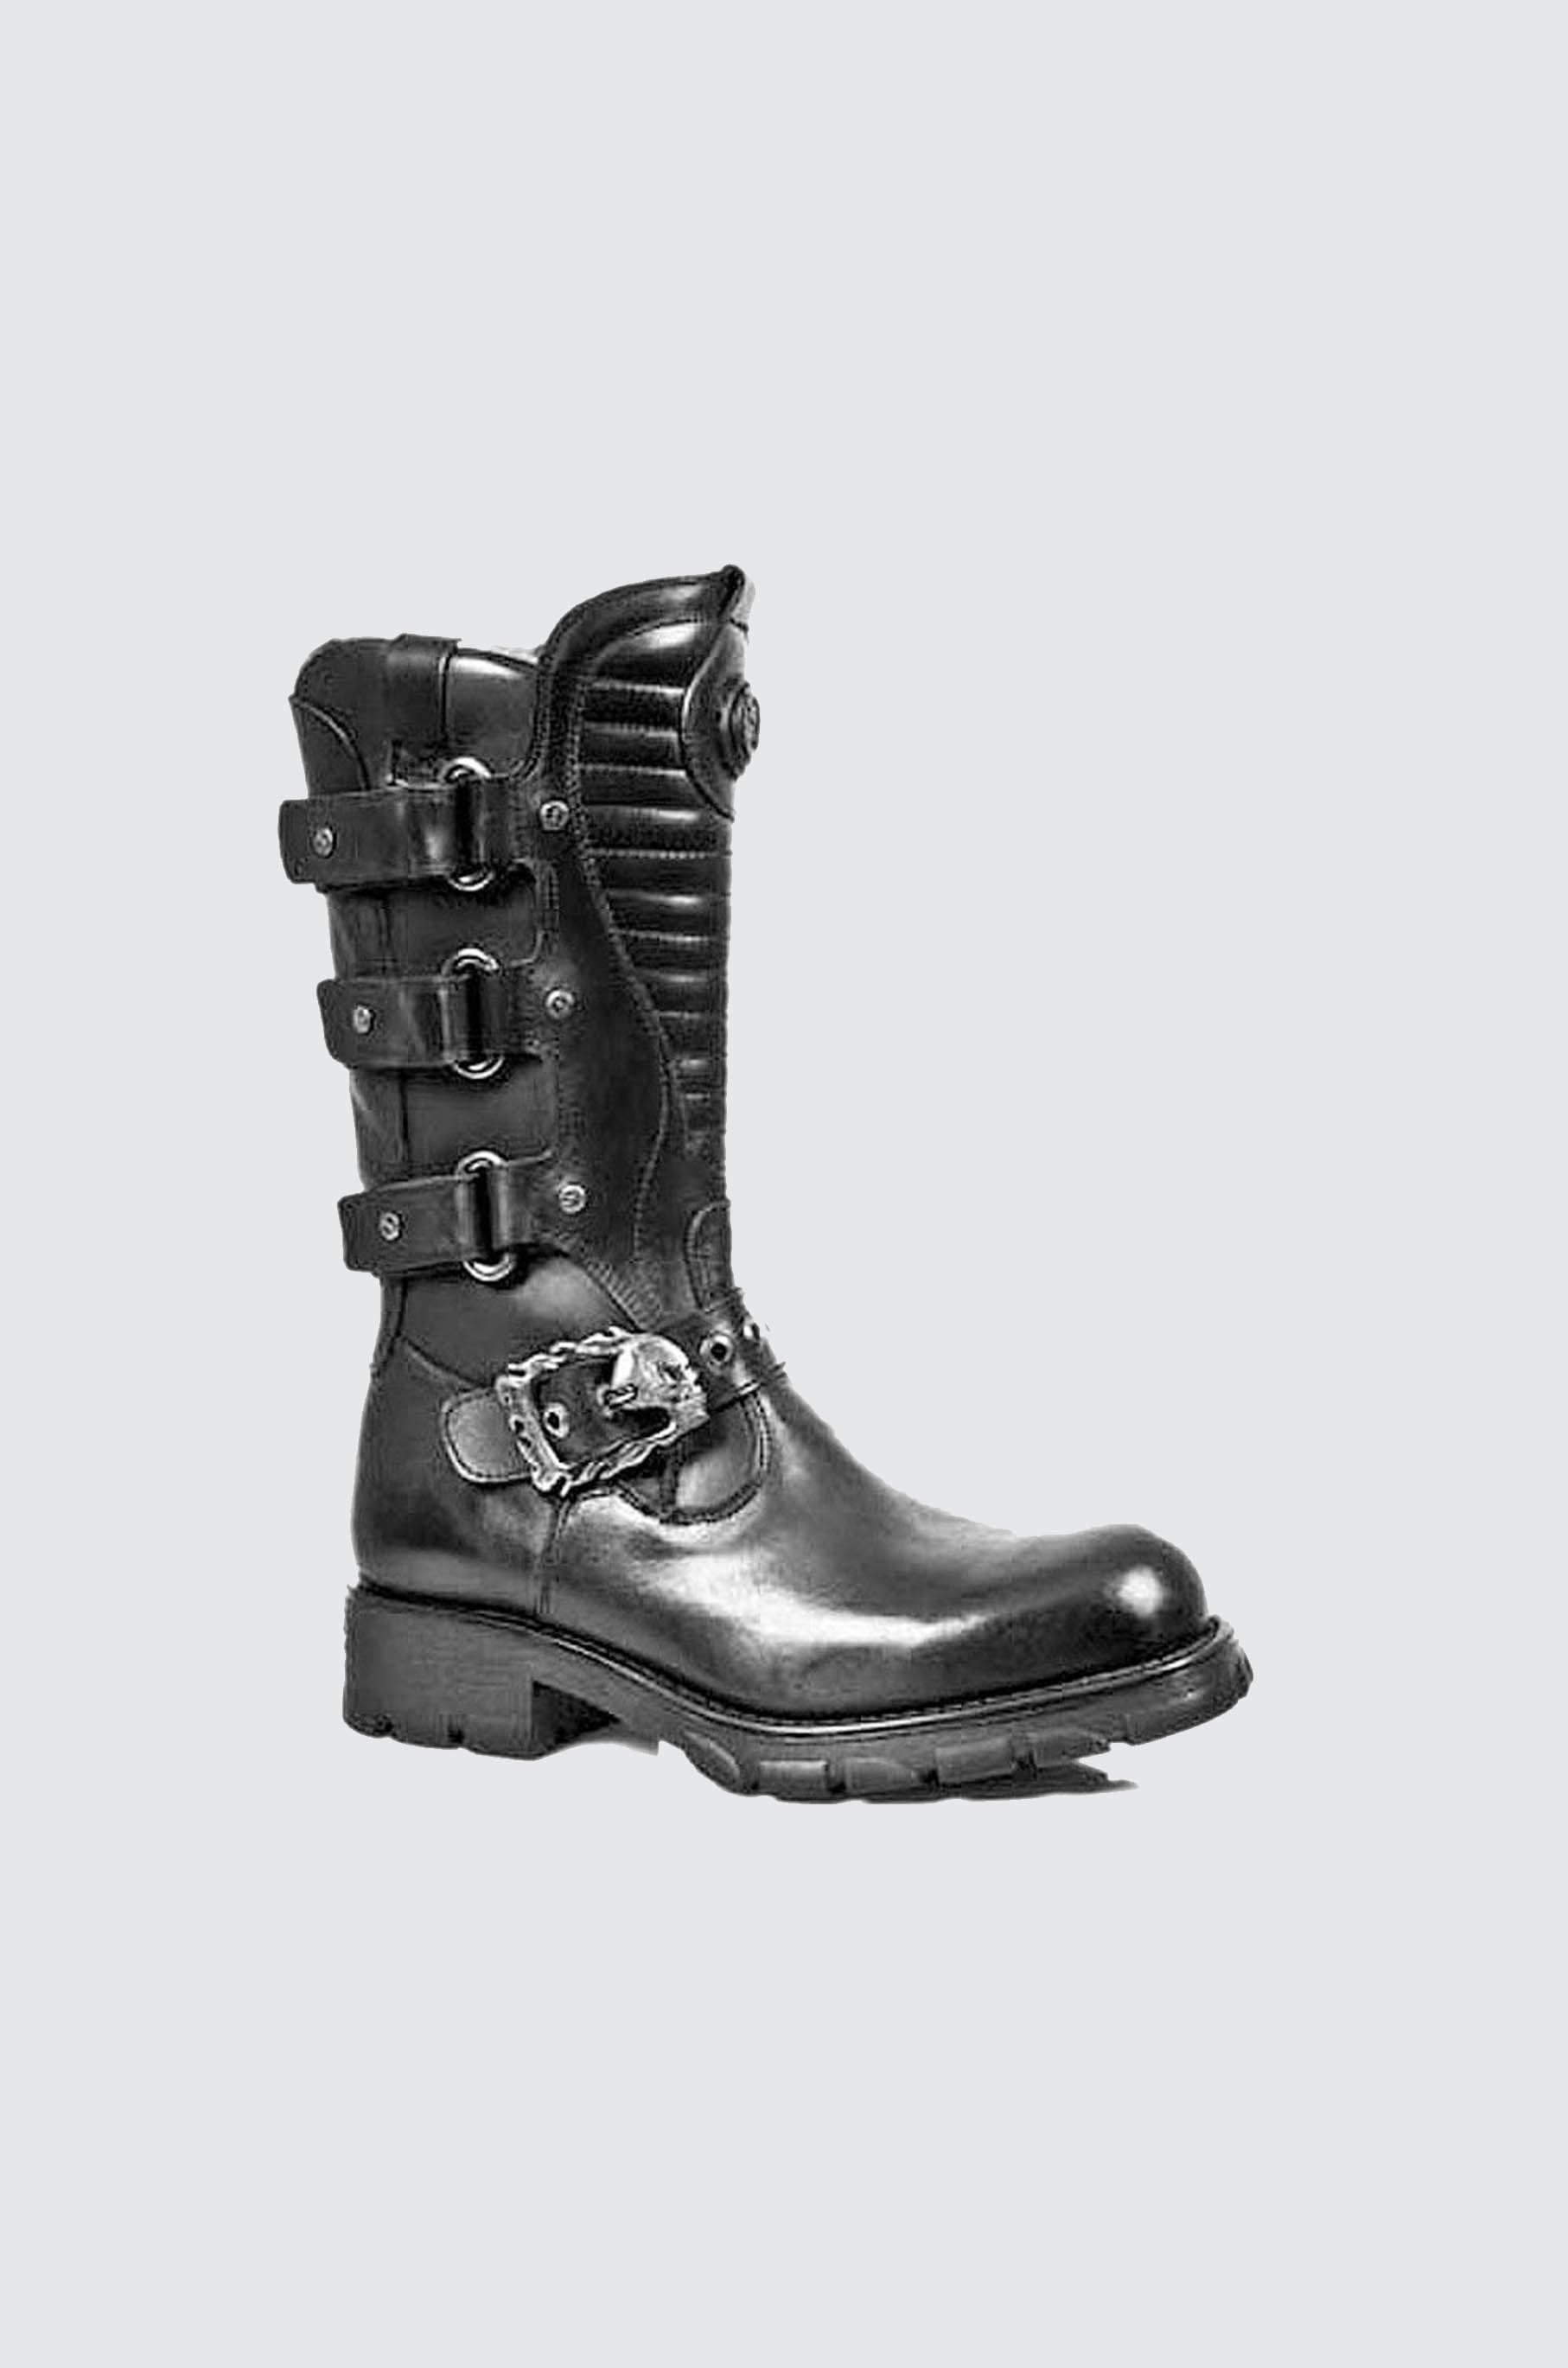 NEW ROCK 7604 S1 LEATHER BIKER BOOTS REACTOR SOLE METALLIC GOTH